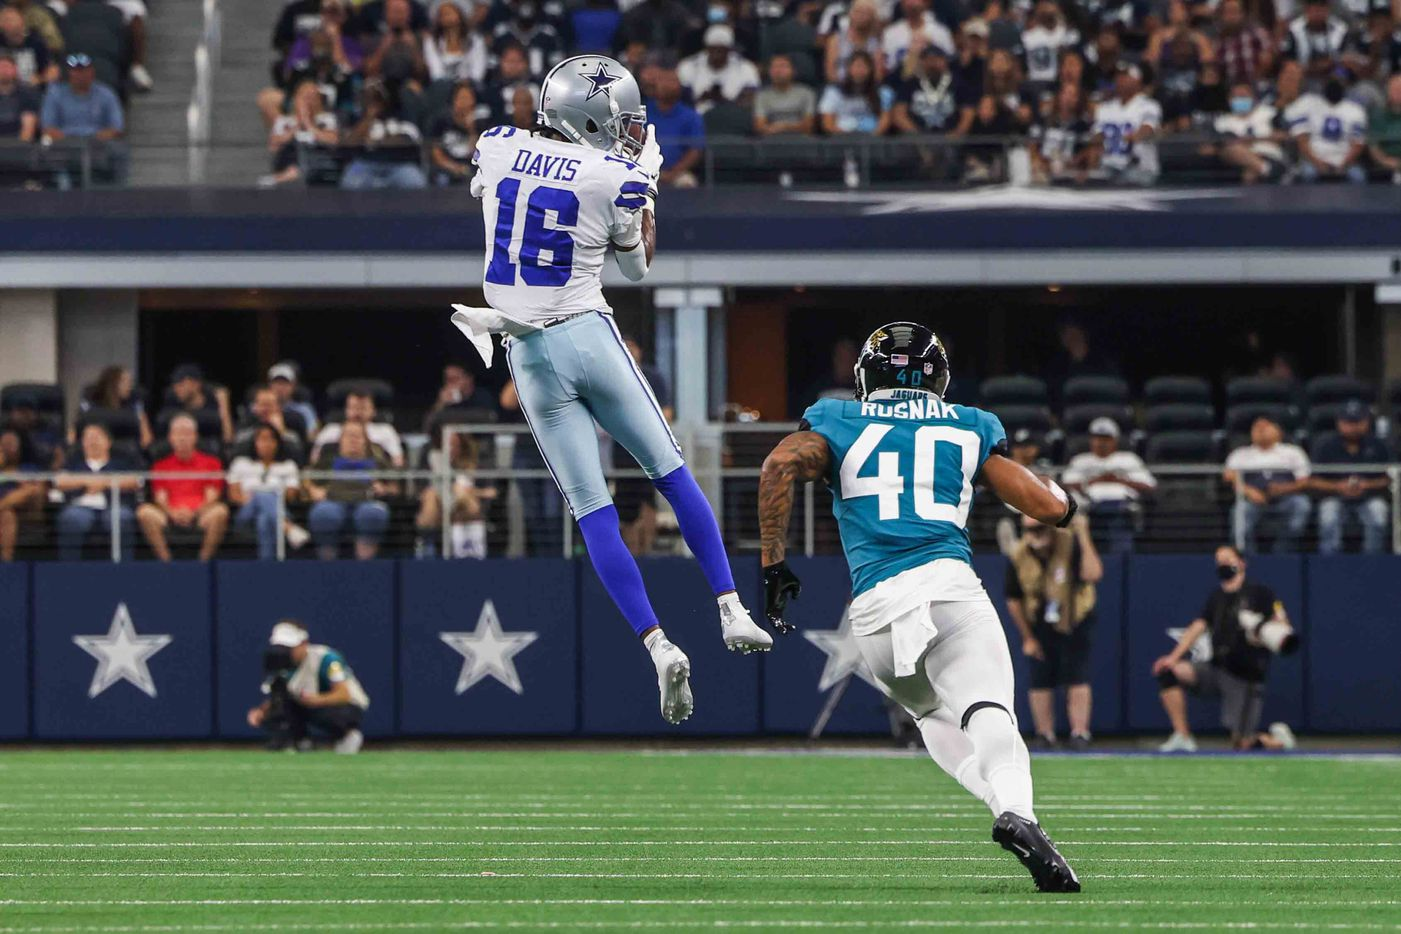 Dallas Cowboys' WR Reggie Davis, 16, catches the football in the air as Jacksonville Jaguars' FS Brandon Rusnak, 40, tries to catch him during the 2nd quarter of a preseason game at AT&T stadium in Arlington on Sunday, August 29, 2021. (Lola Gomez/The Dallas Morning News)